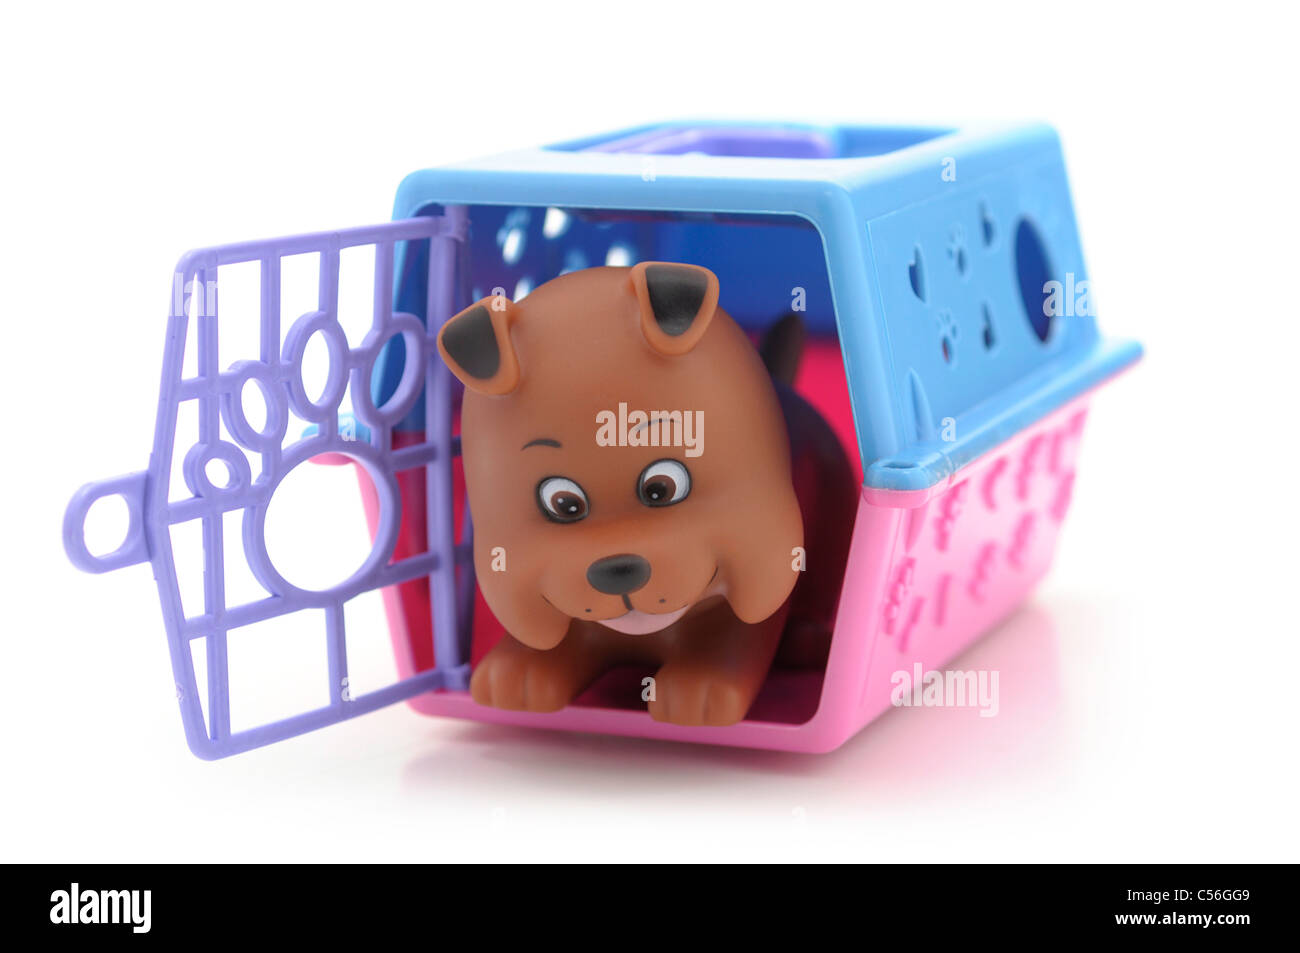 Toy Kennel, Dog House - Stock Image